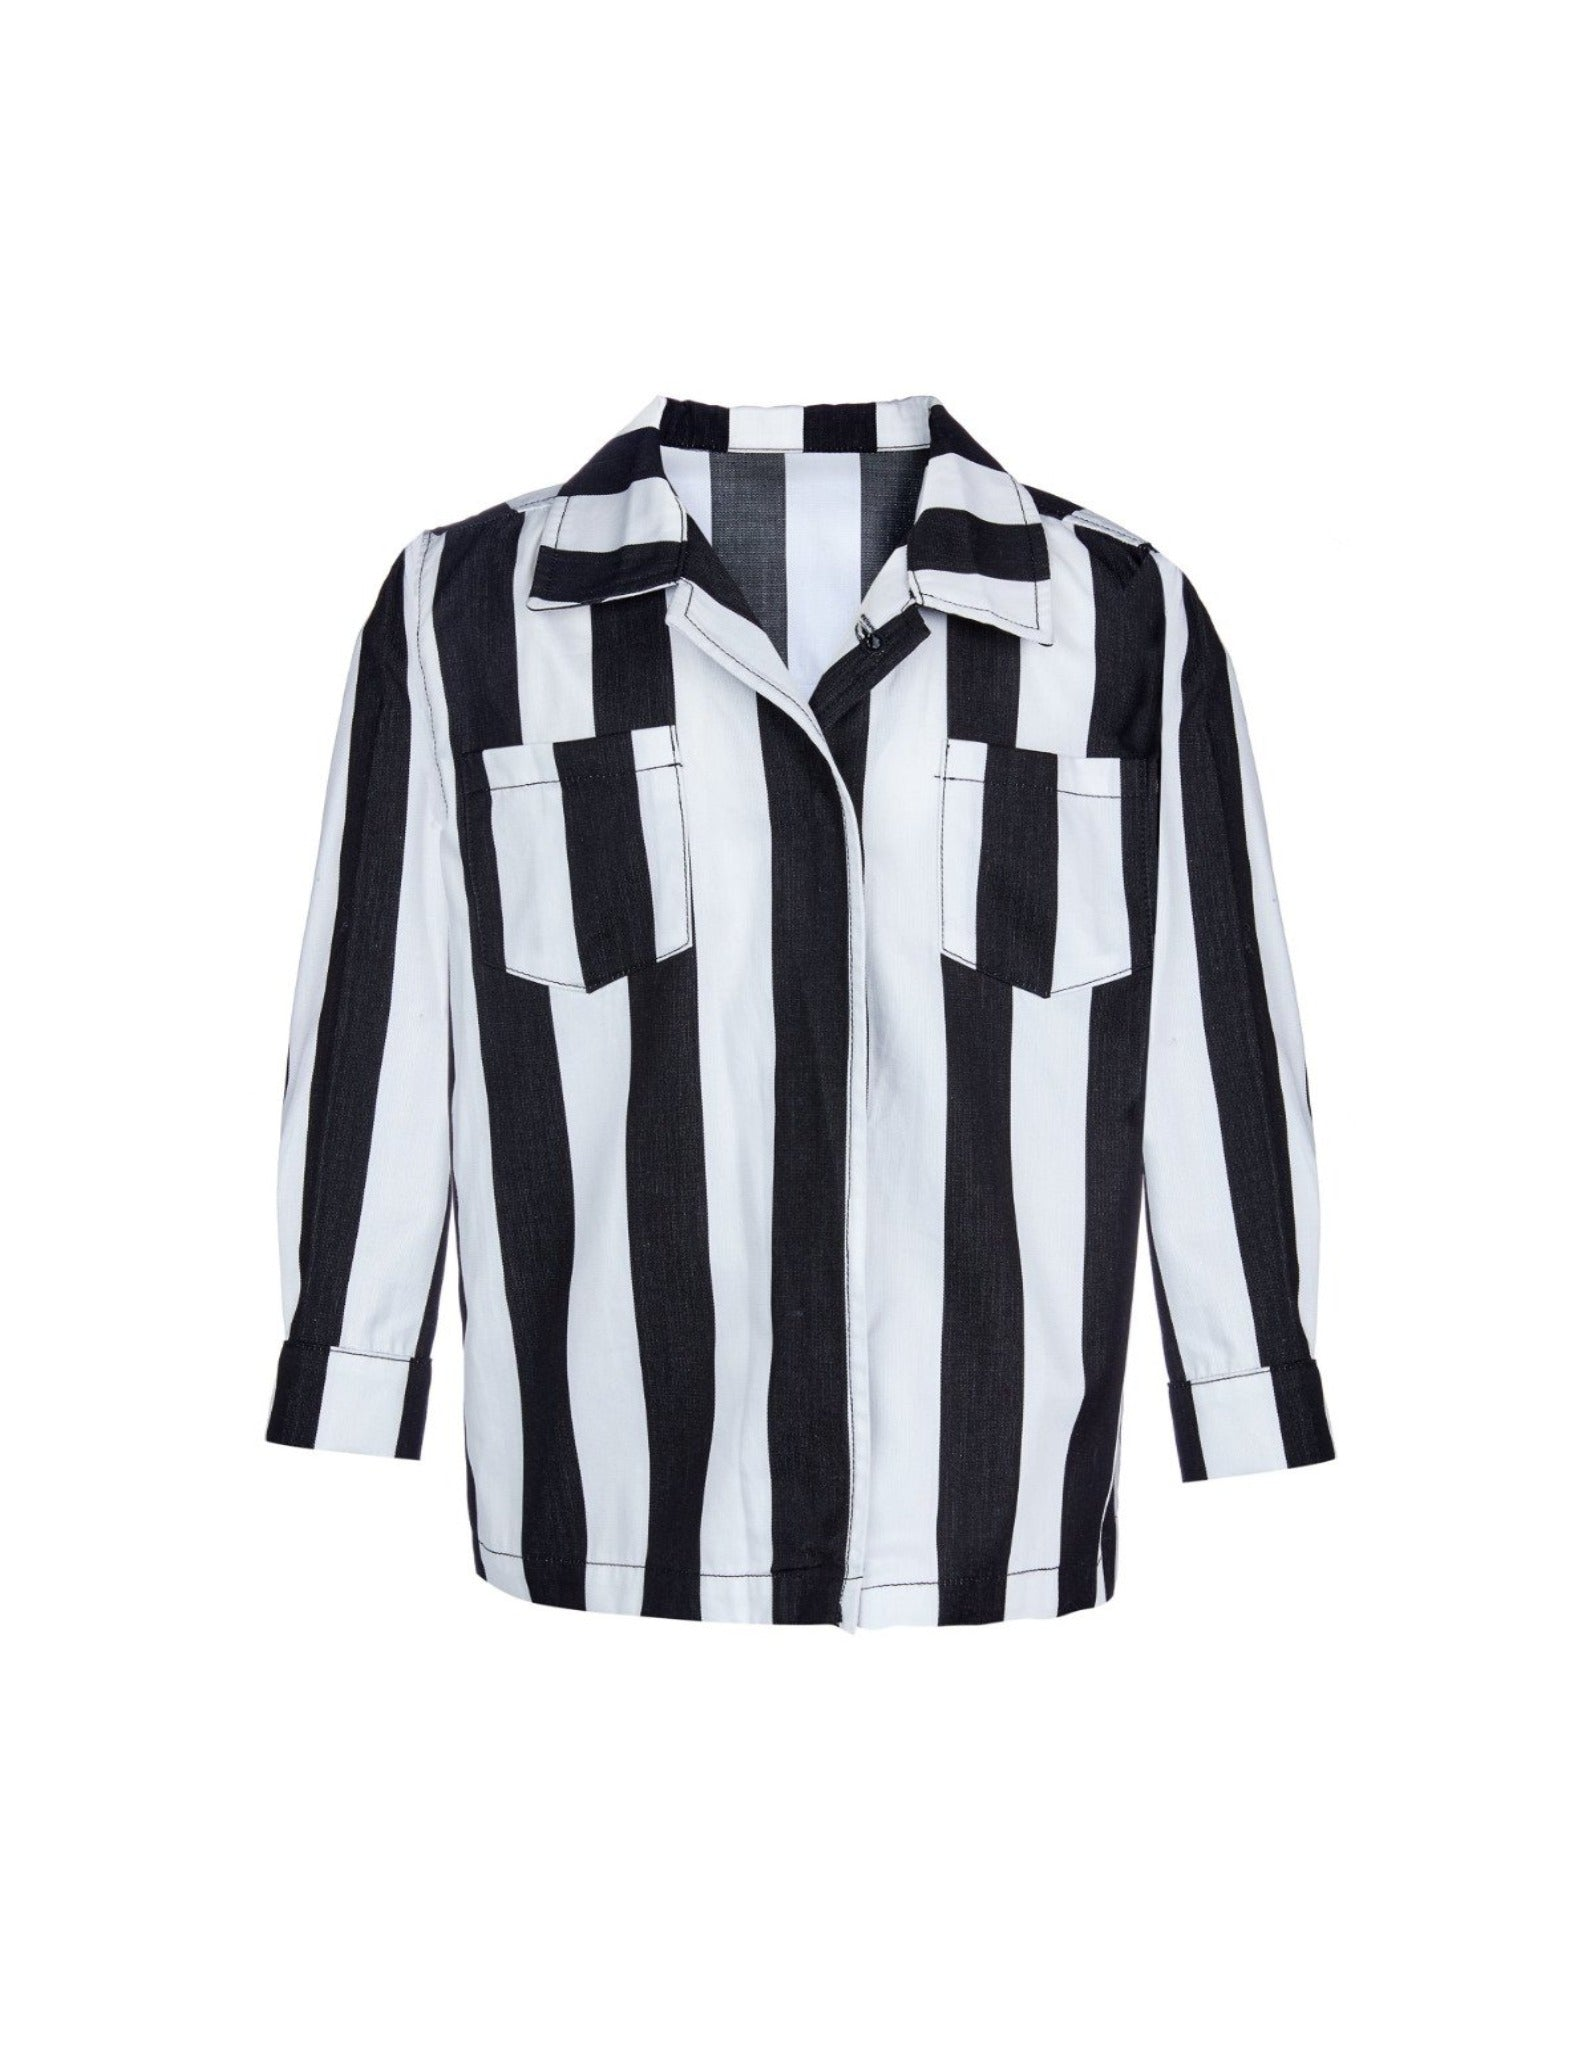 M'A KIDS STRIPED SHIRT IN BLACK AND WHITE